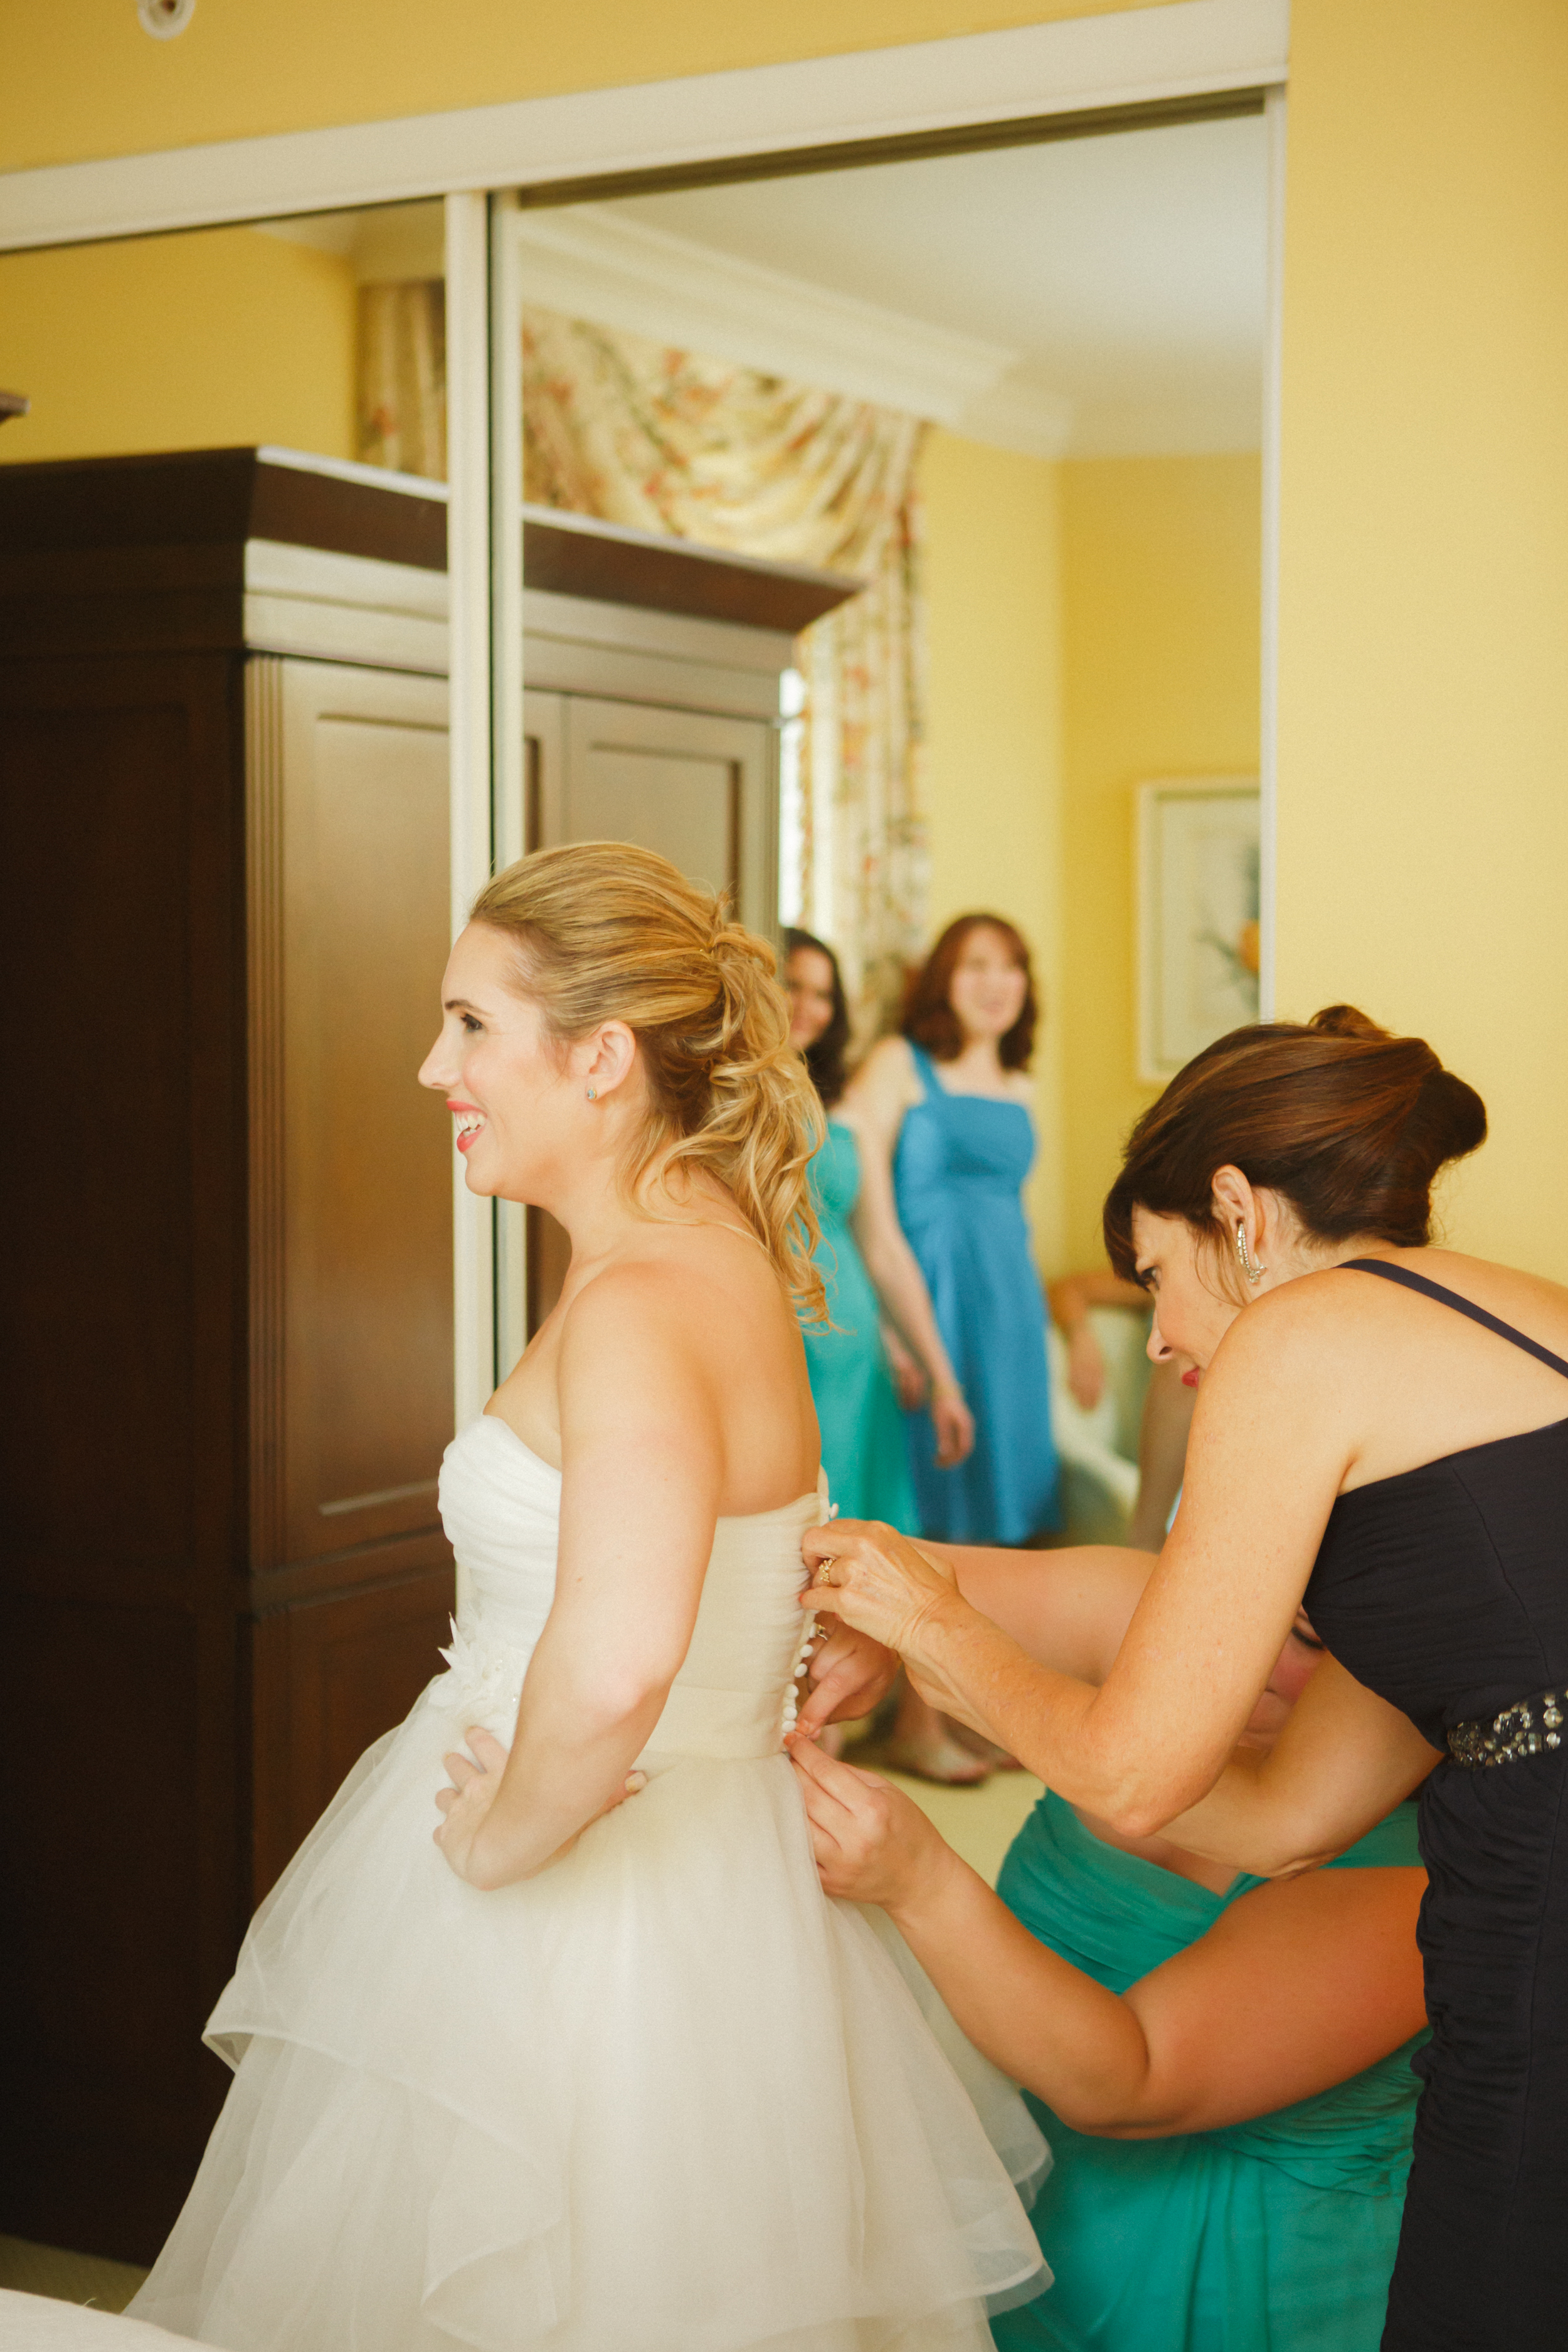 Vness-Photography-Chevy-Chase-Country-Club-A&R-Wedding-152.jpg